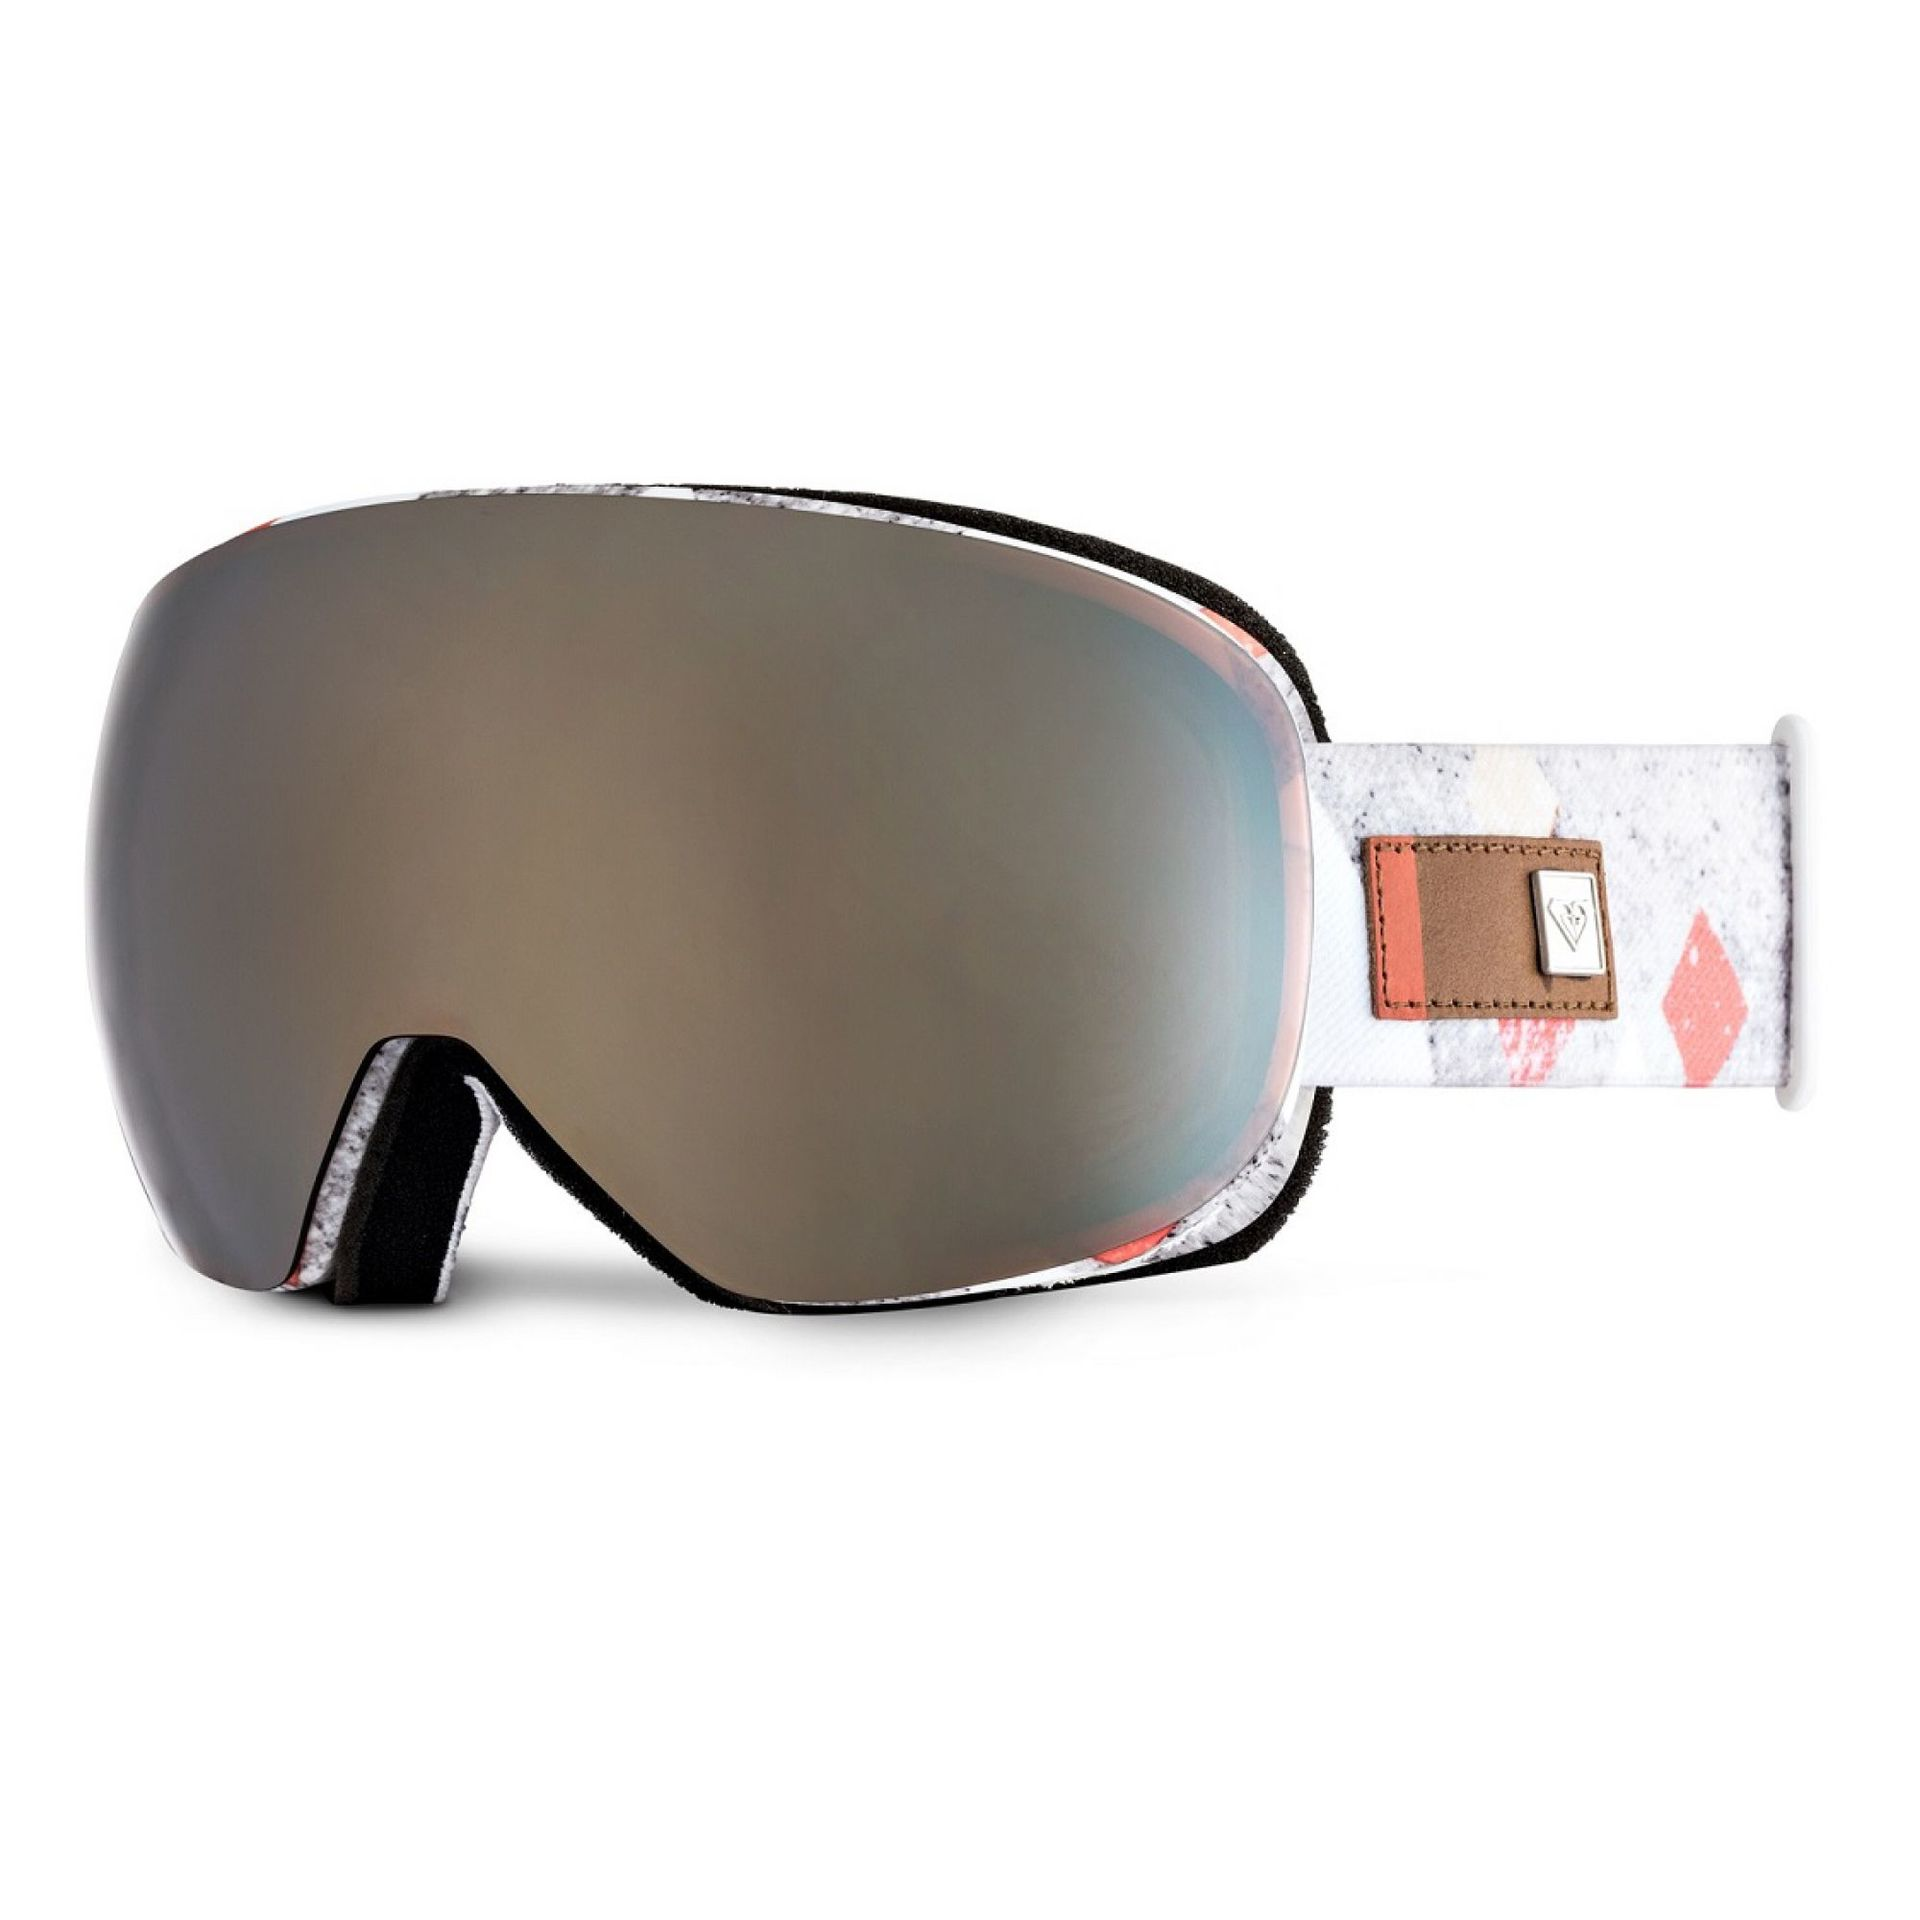 GOGLE ROXY POPSCREEN FROZEN MOUNTAIN|AMBER ROSE ML GOLD